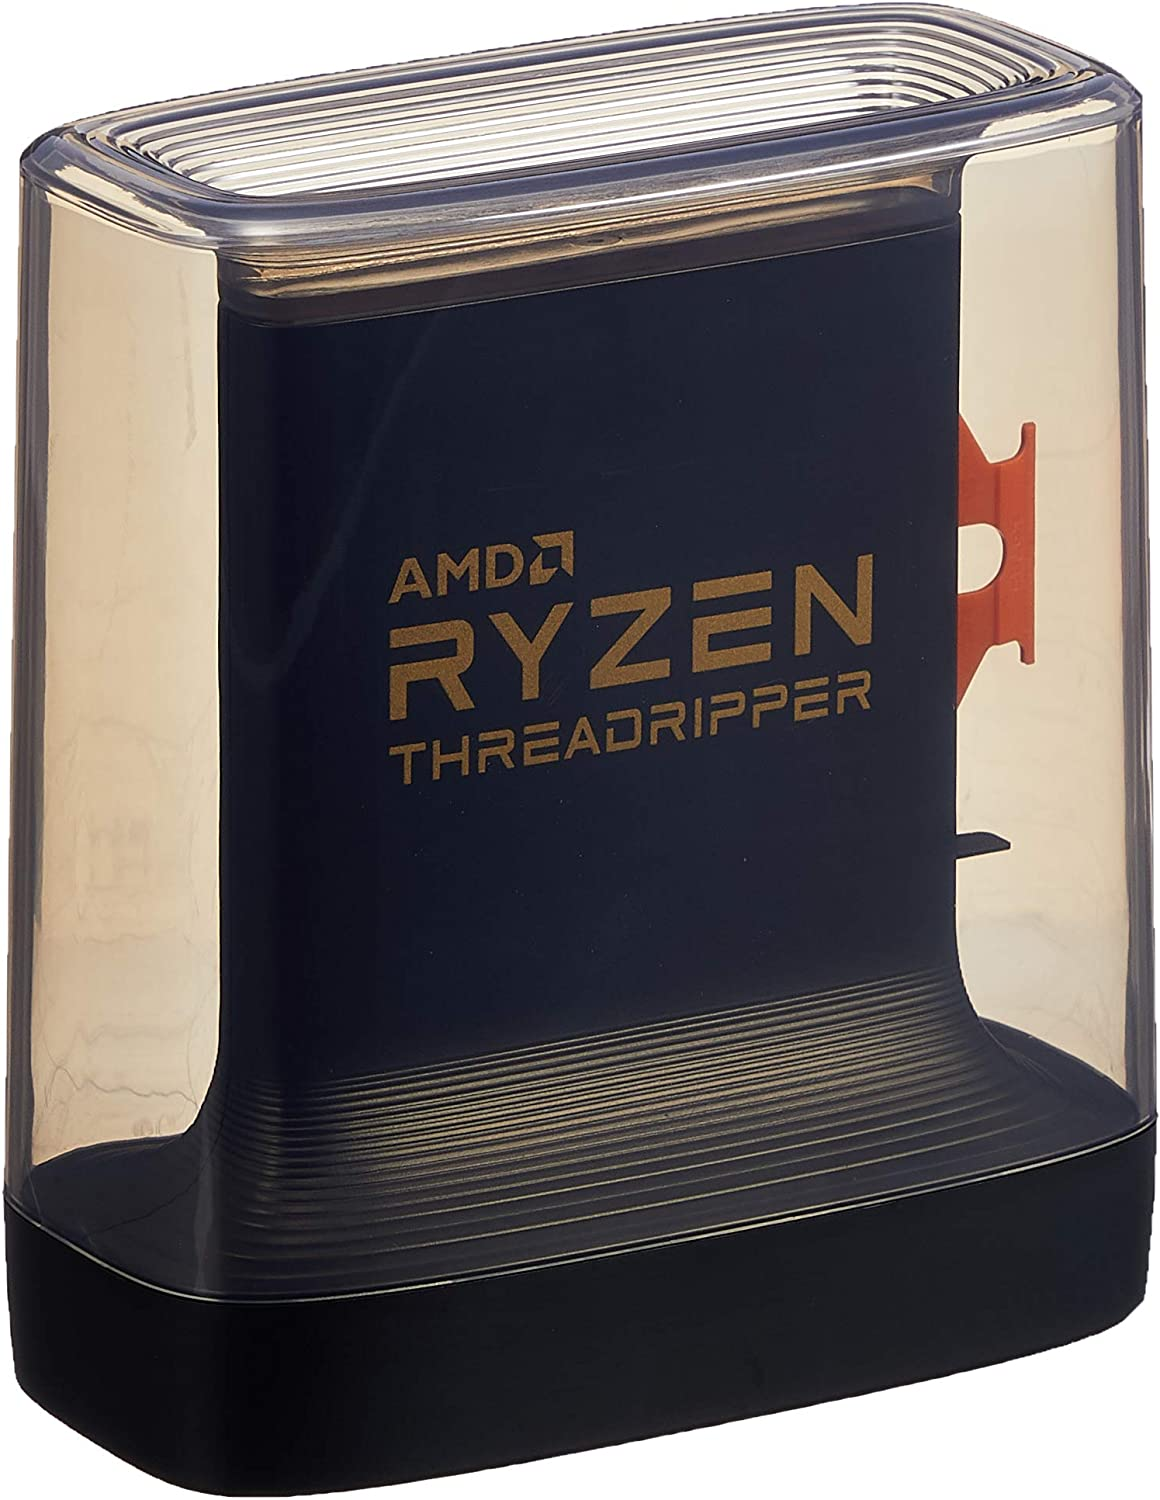 AMD Ryzen Threadripper 3960X 24-Core, 48-Thread Unlocked Desktop Processor, without Cooler